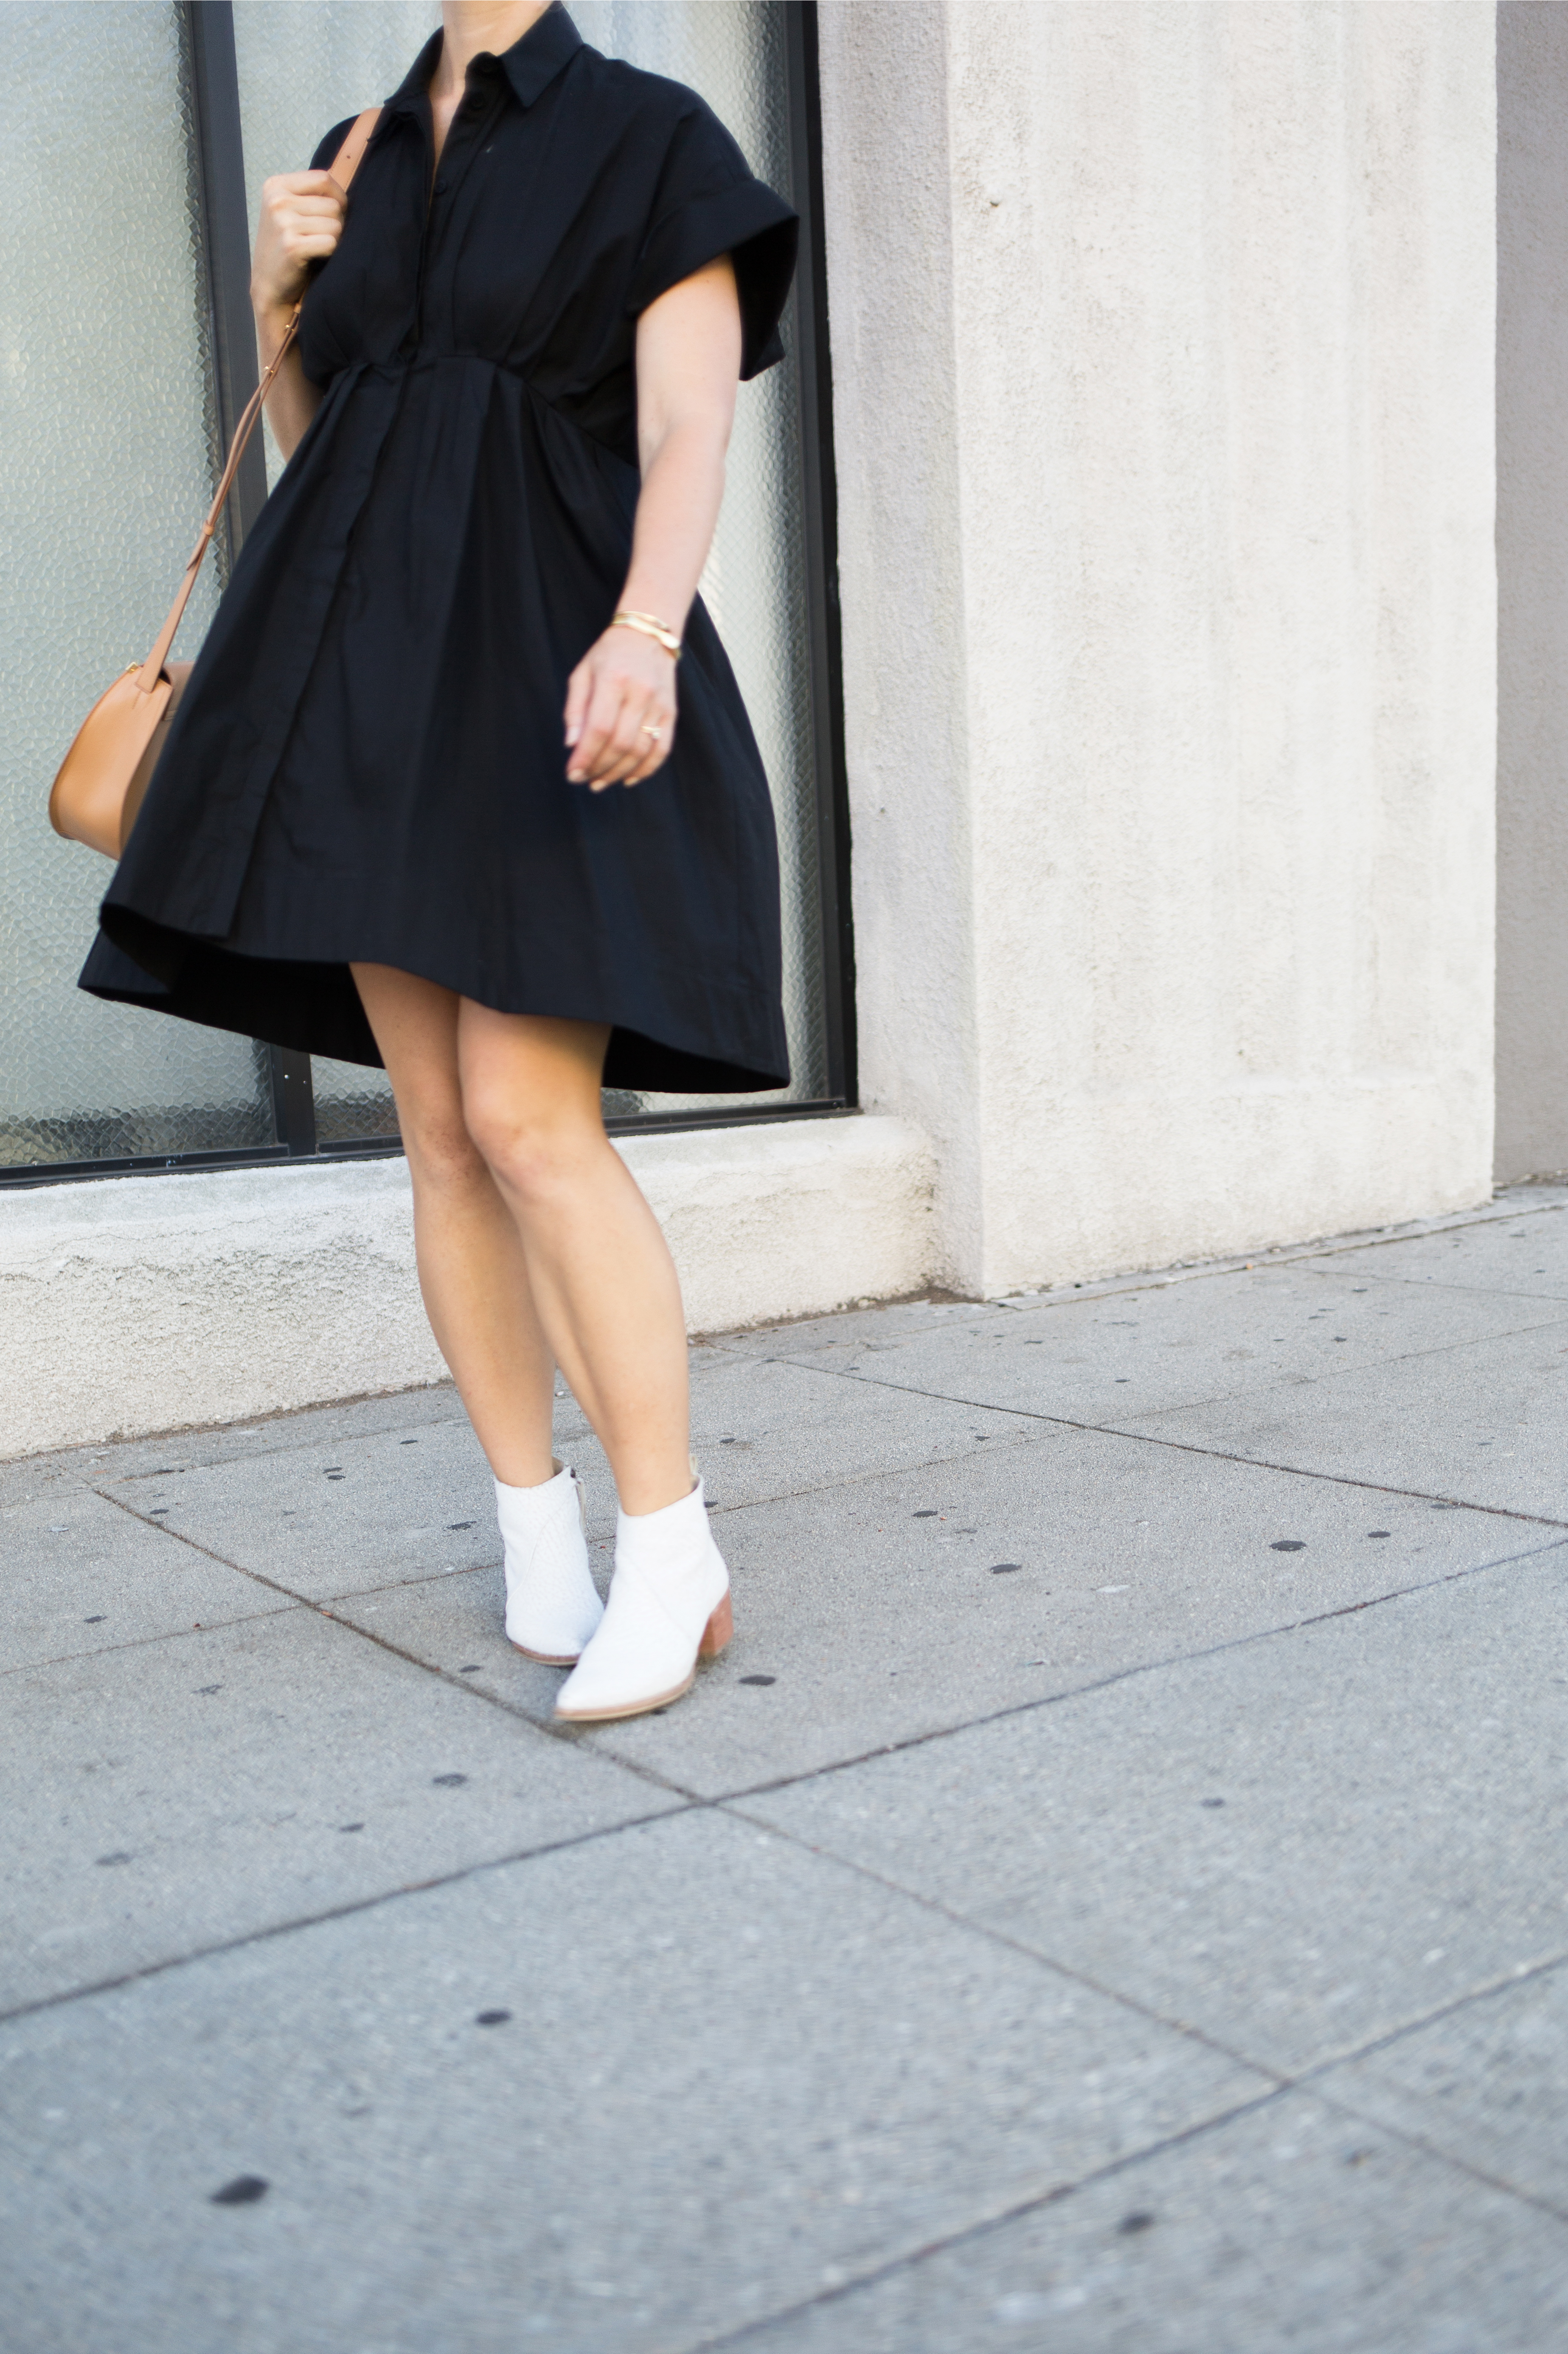 how to transition from summer to fall style with an architectural black shirt dress and light accessories